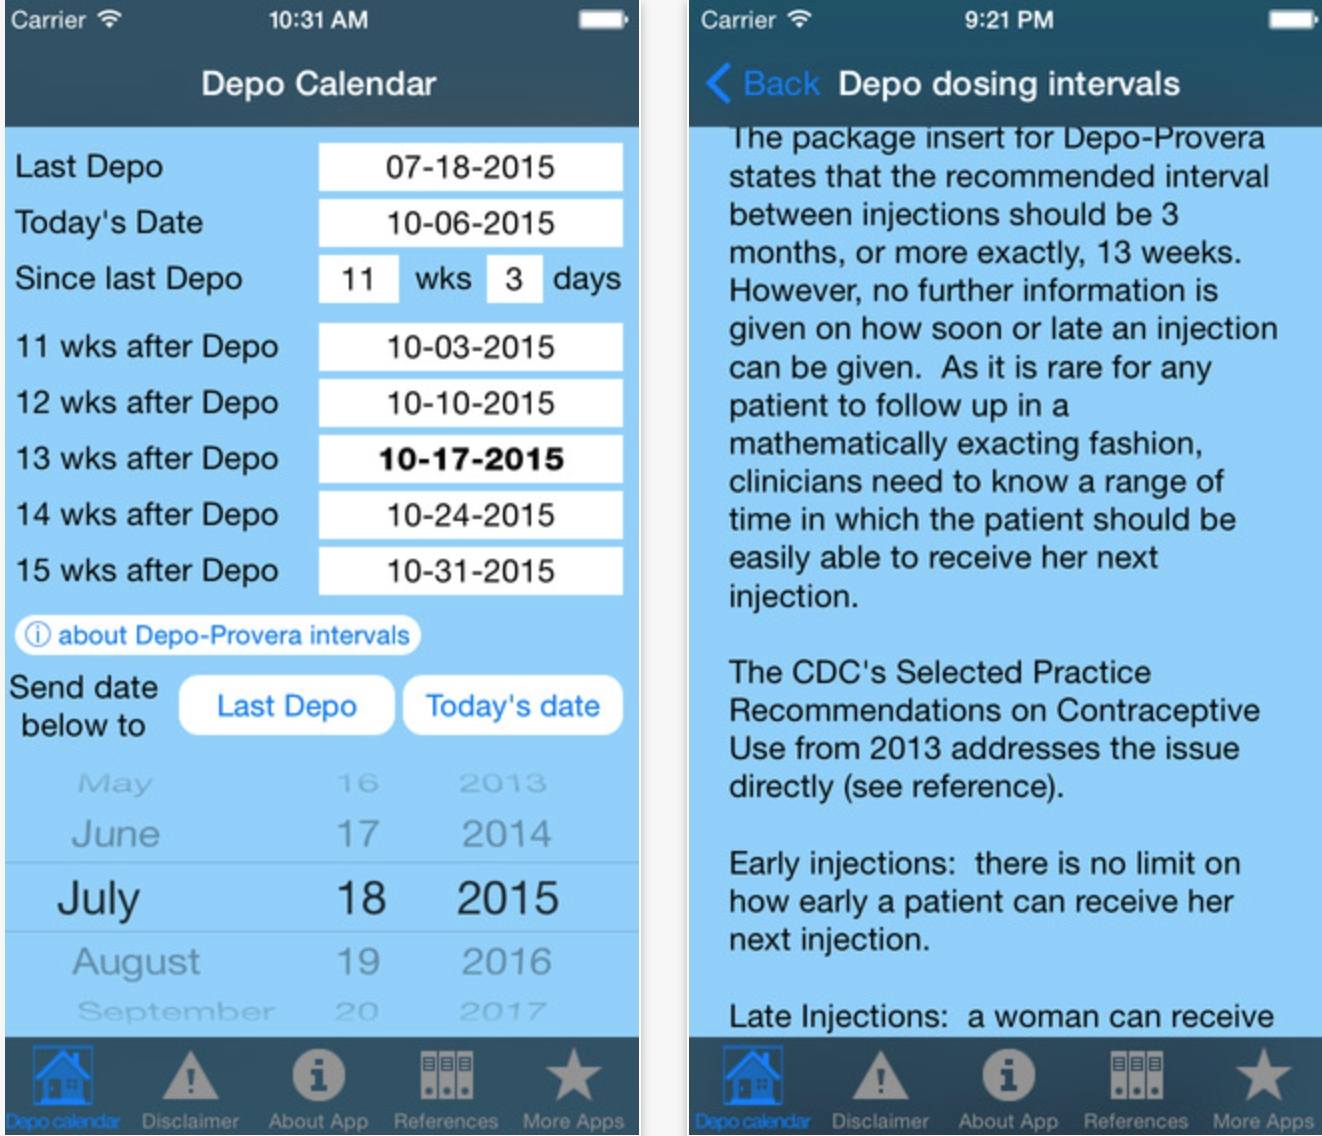 Depo Calendar App Could Significantly Improve Contraception  Depo Administration Calendar